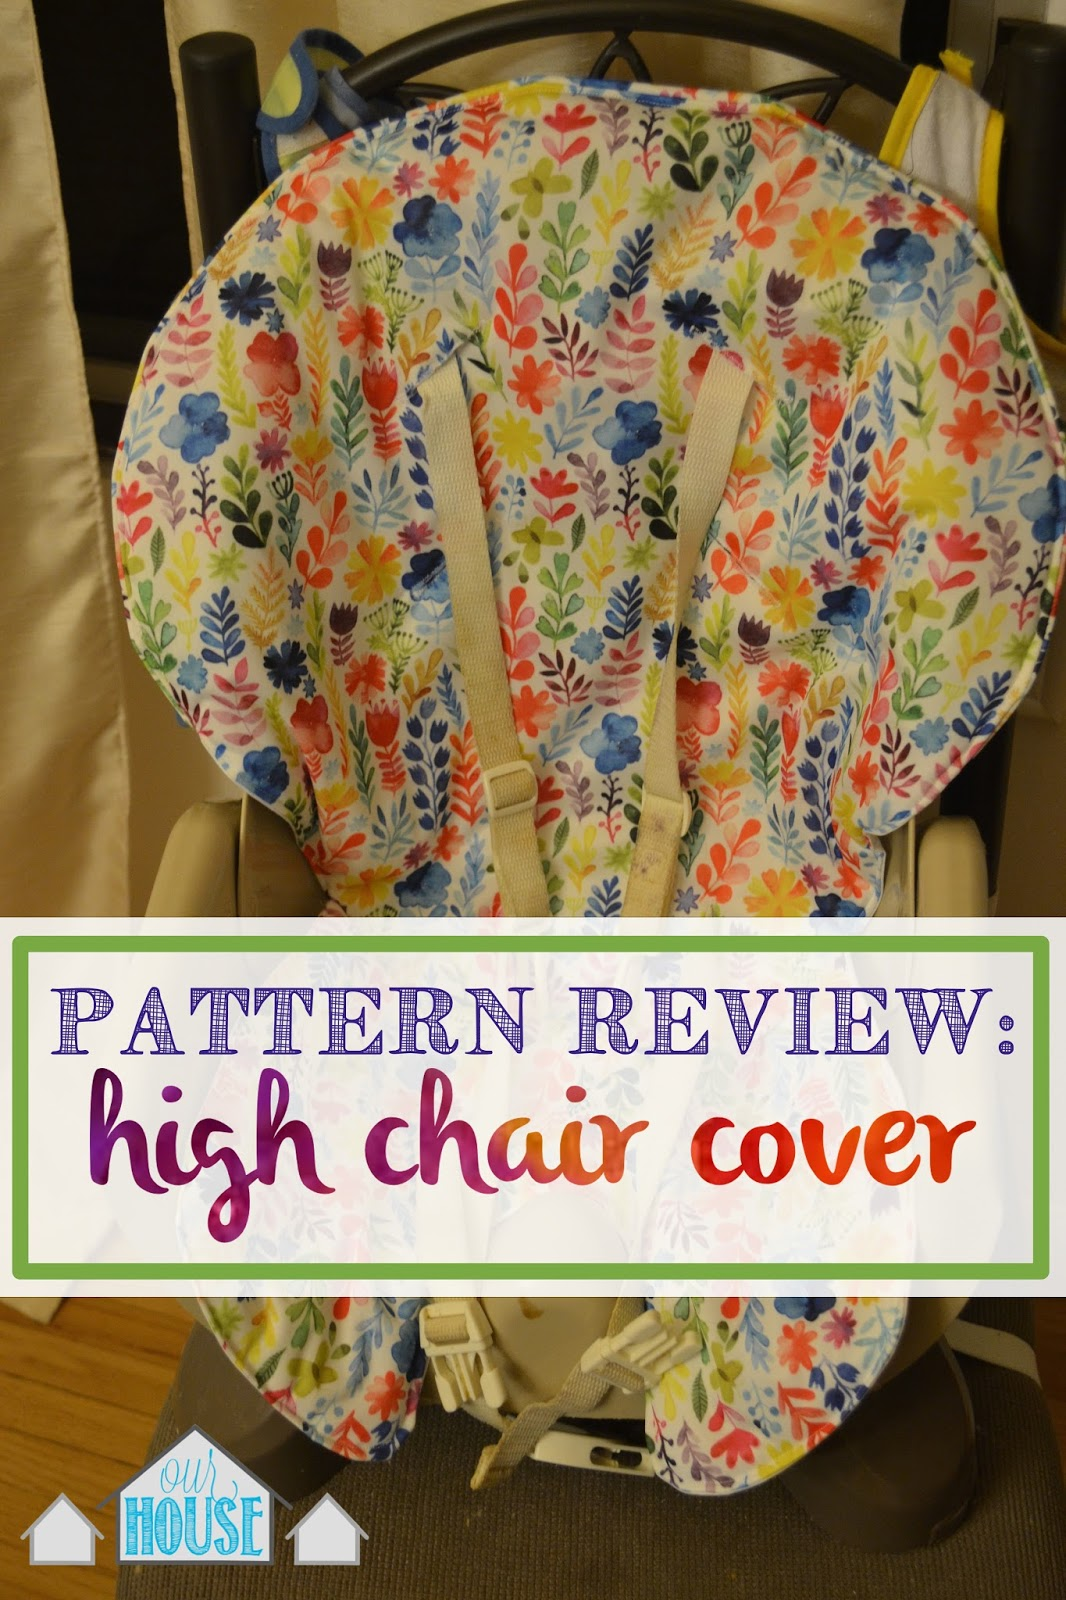 Our house in the middle of our street pattern review high chair cover